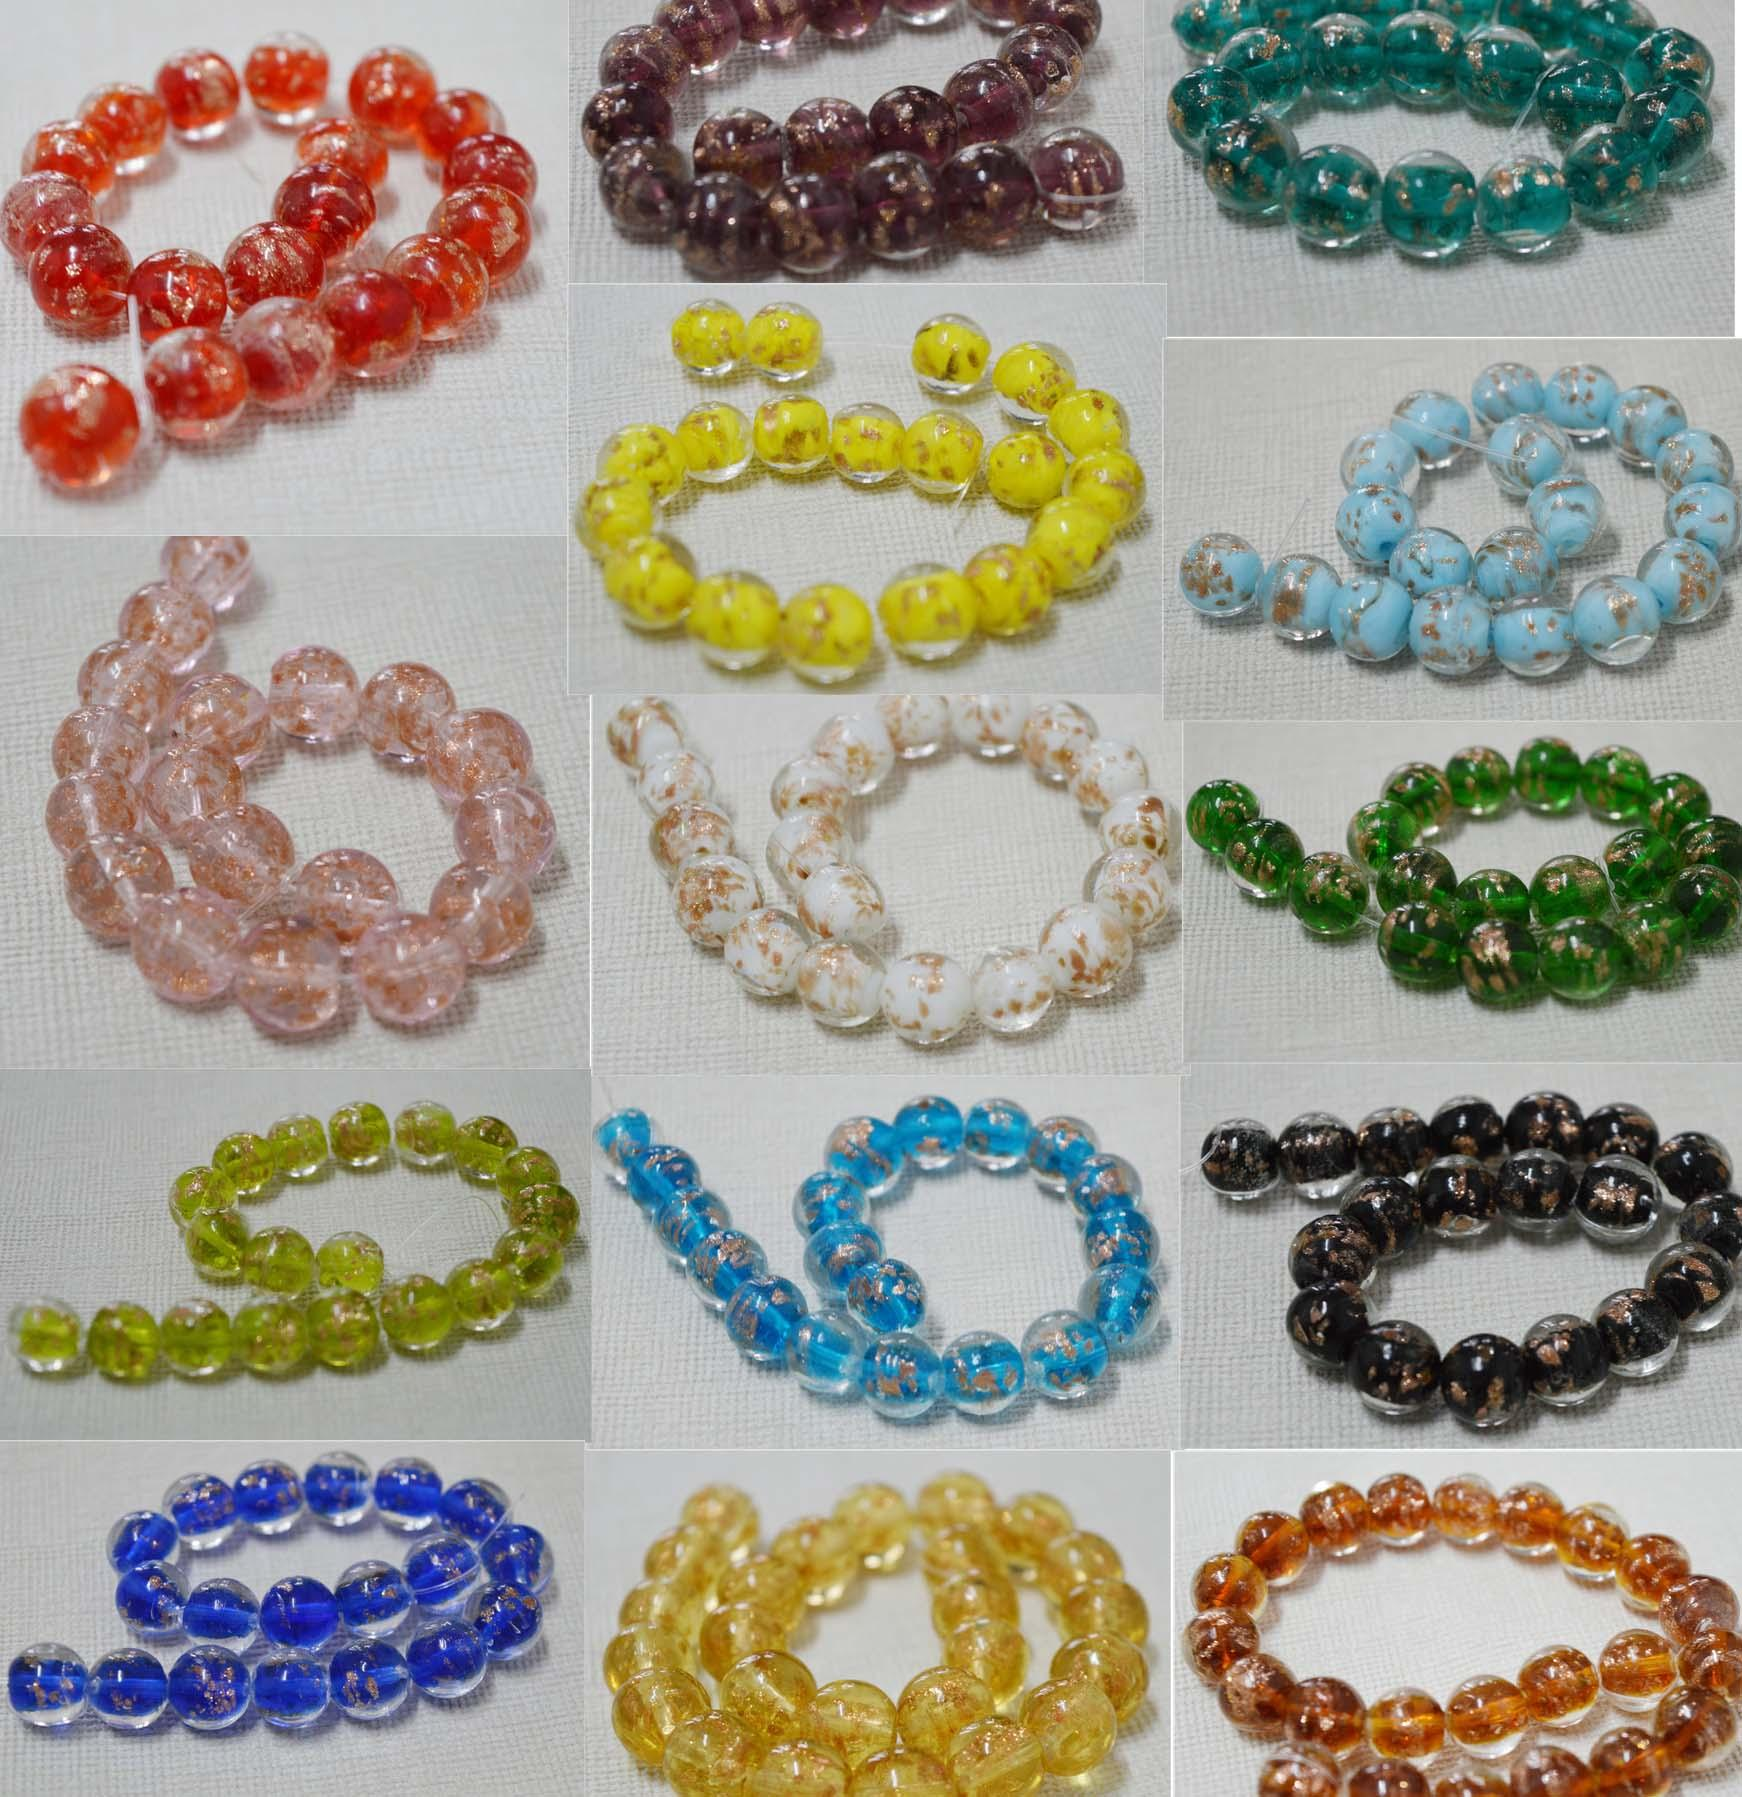 x glass australia supplies us bead beads round bulk spacetrader wholesale buy mix in